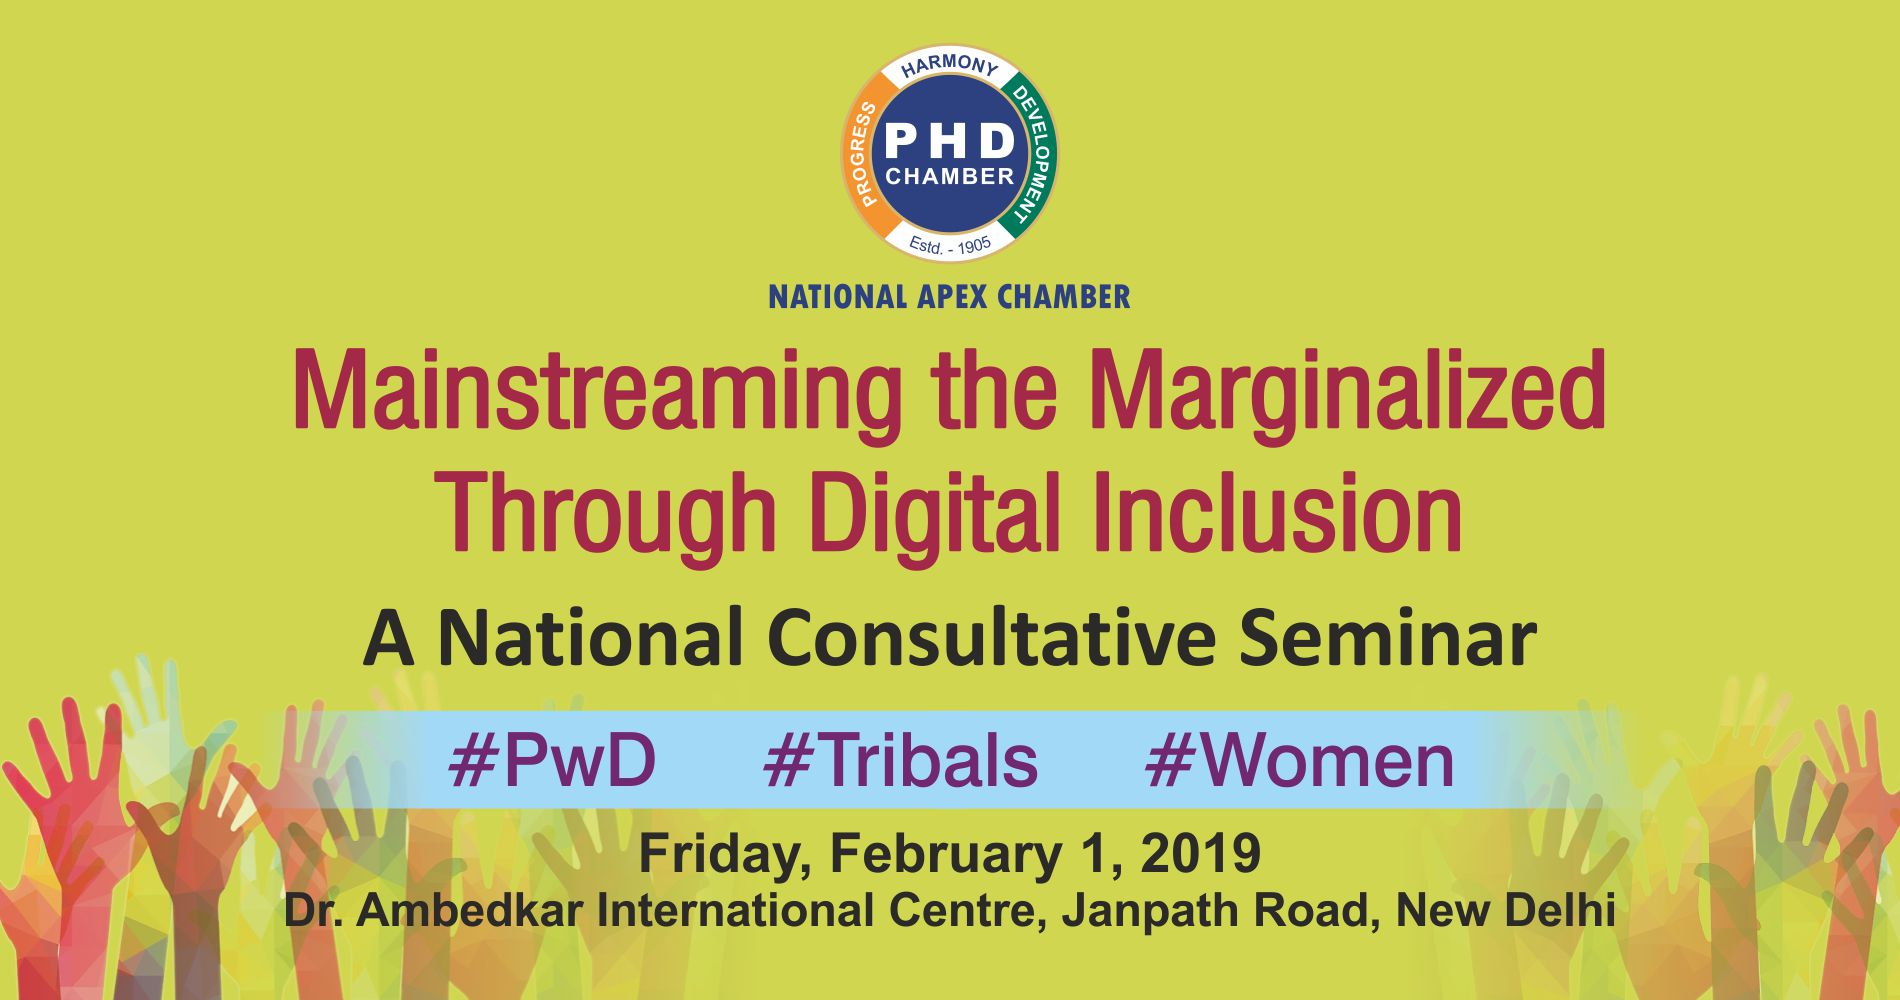 Mainstreaming the Marginalized Through Digital Inclusion  #PwD #Tribals #Women  – A National Consultative Seminar